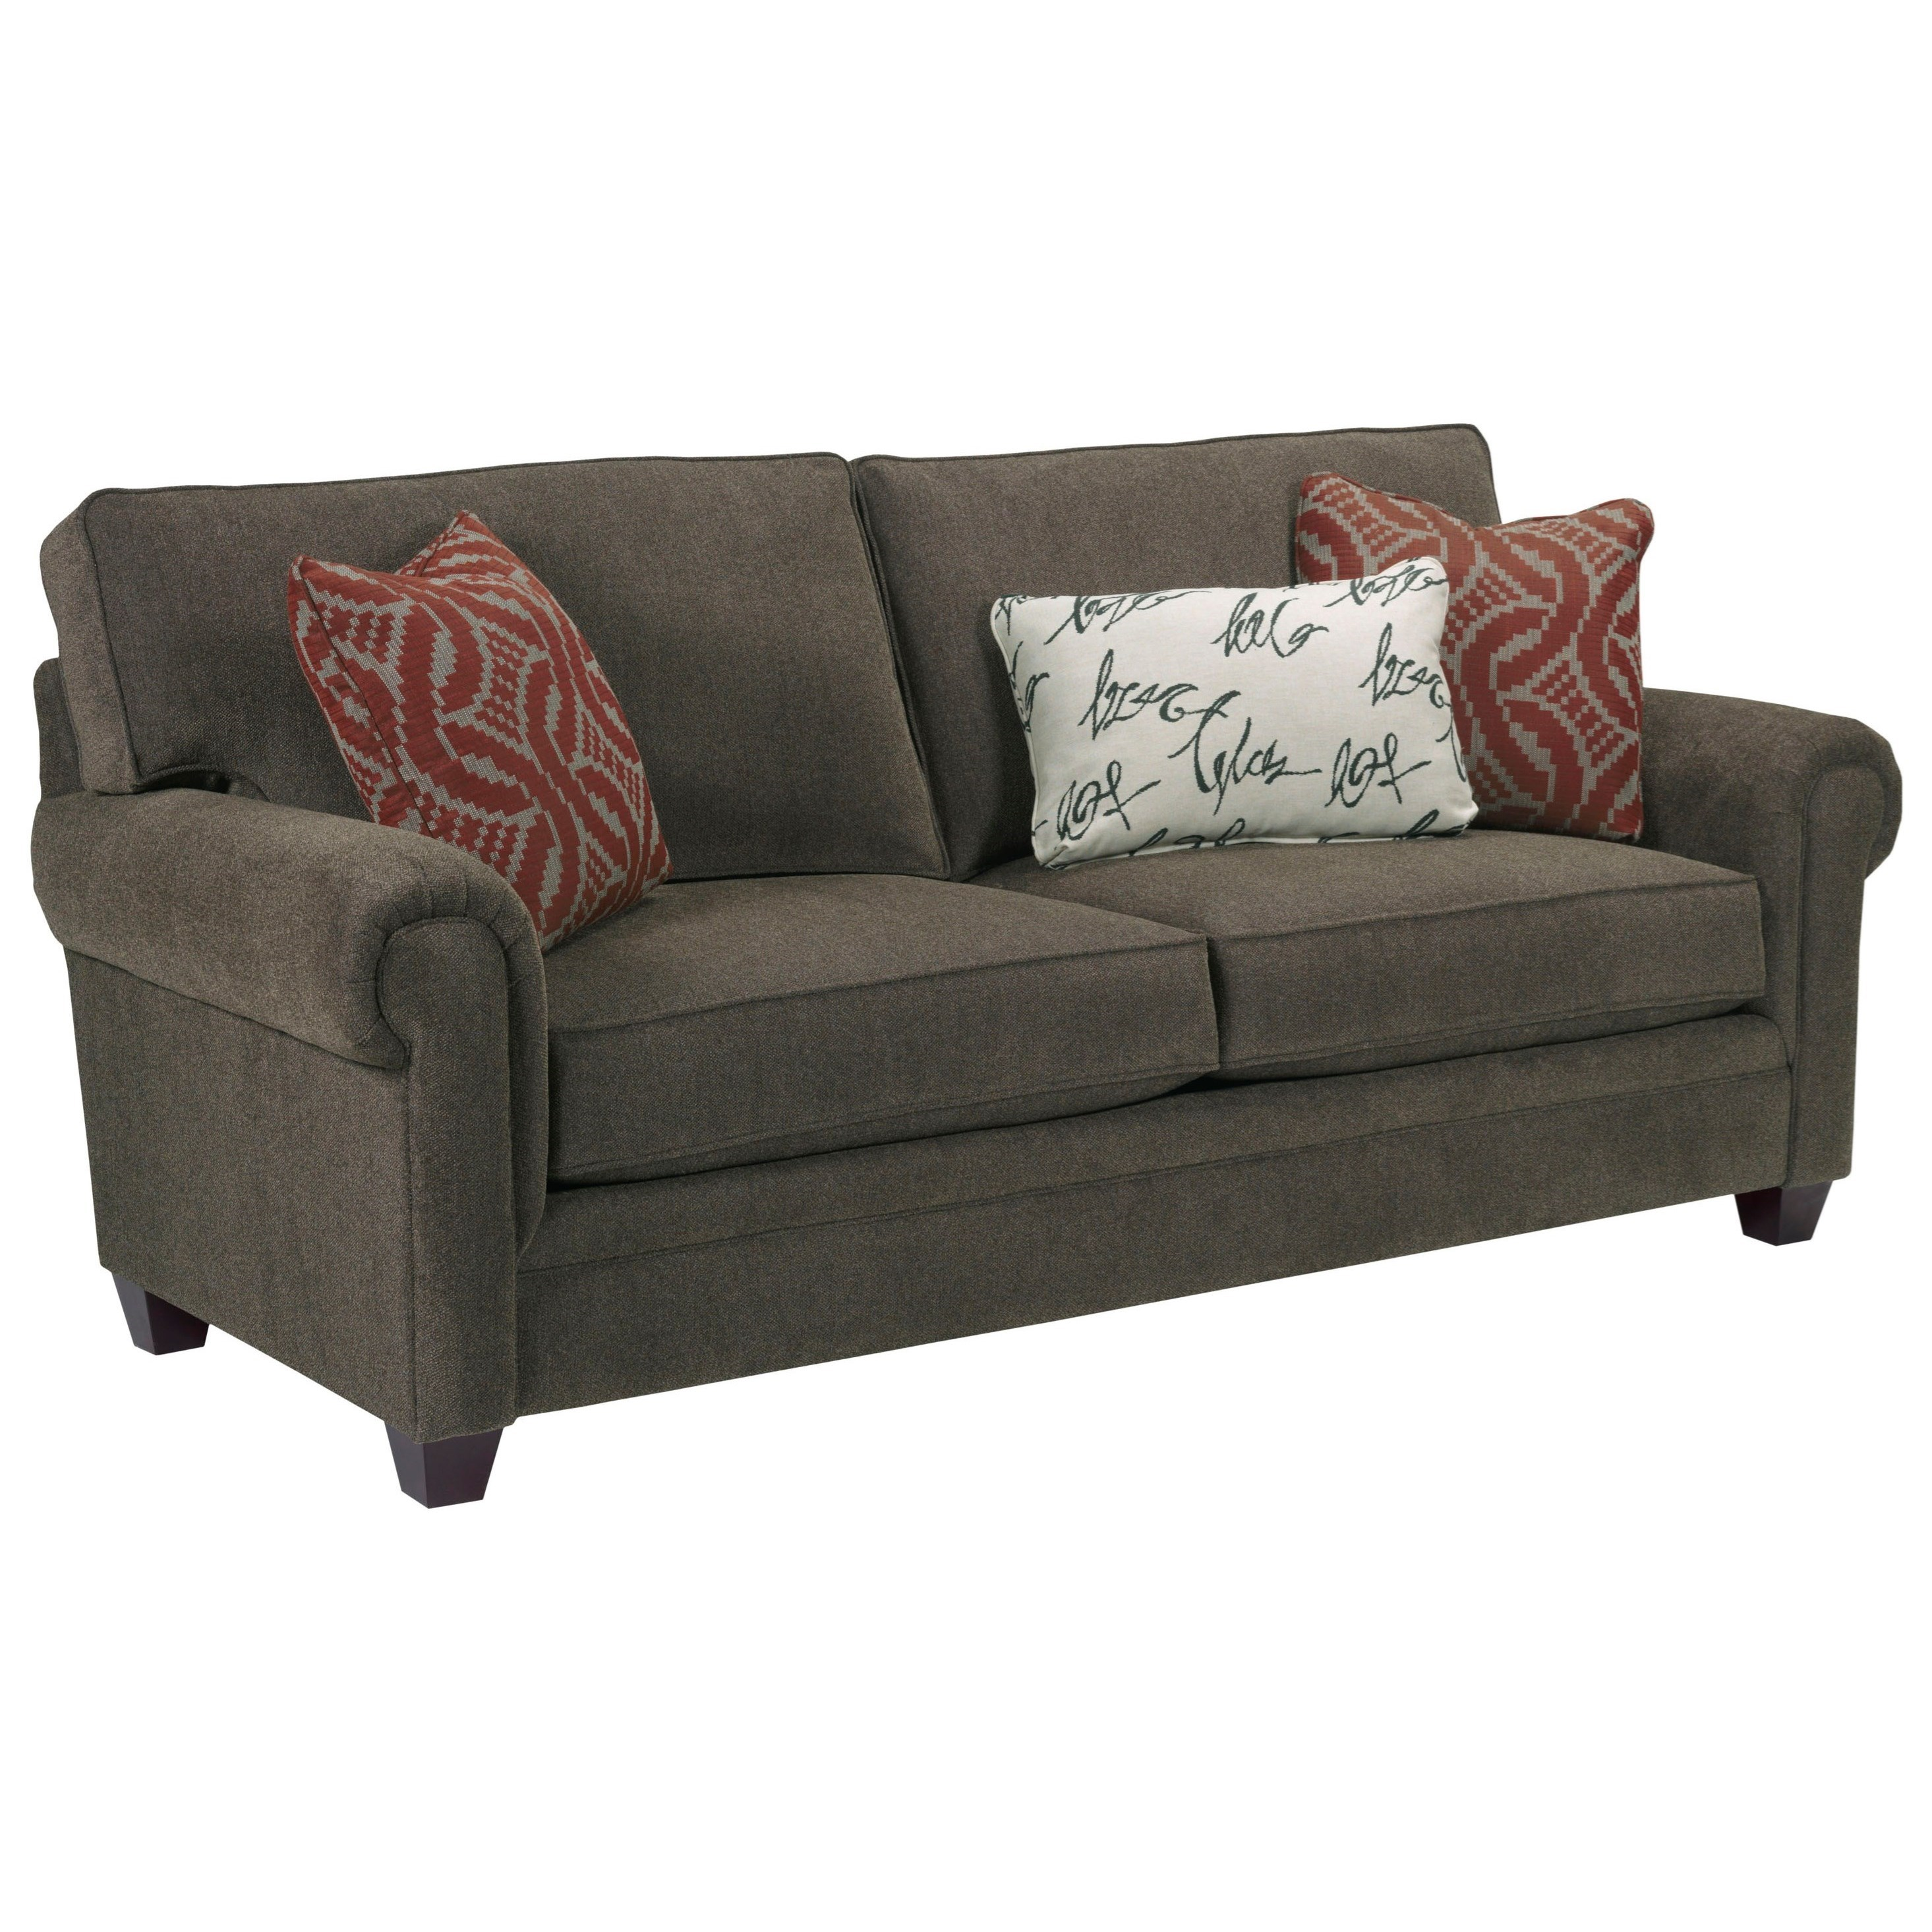 Broyhill Furniture Monica Transitional Queen Air Dream Sleeper Sofa with Rolled Arms - Knight ...